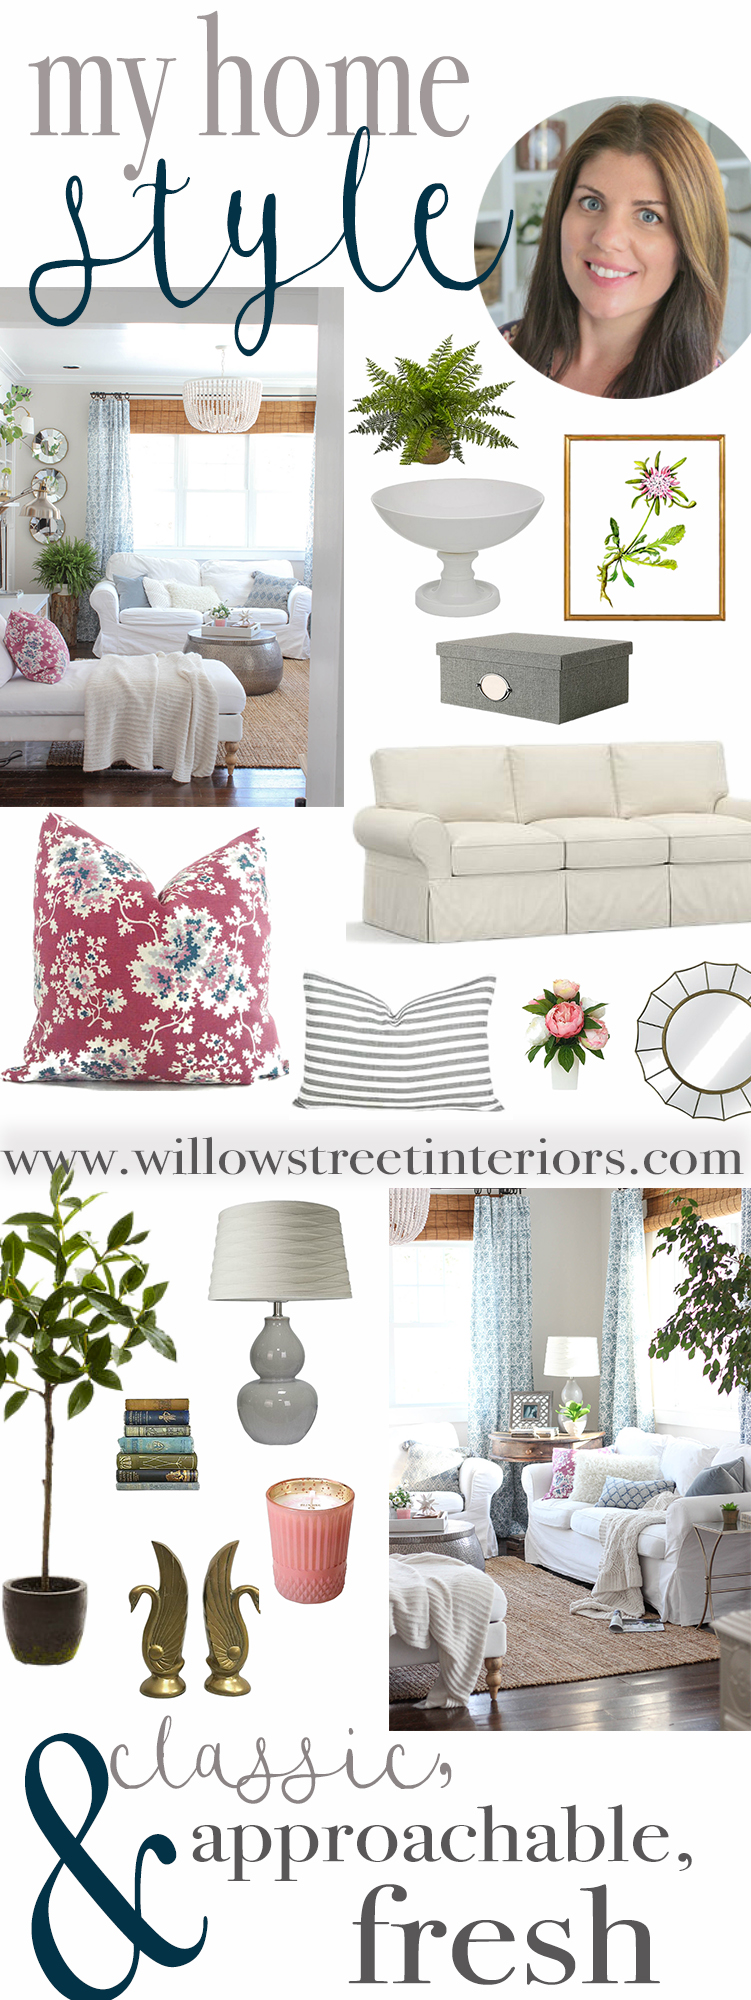 My Home Style Mix, Match, Coordinate | Willow Street Interiors